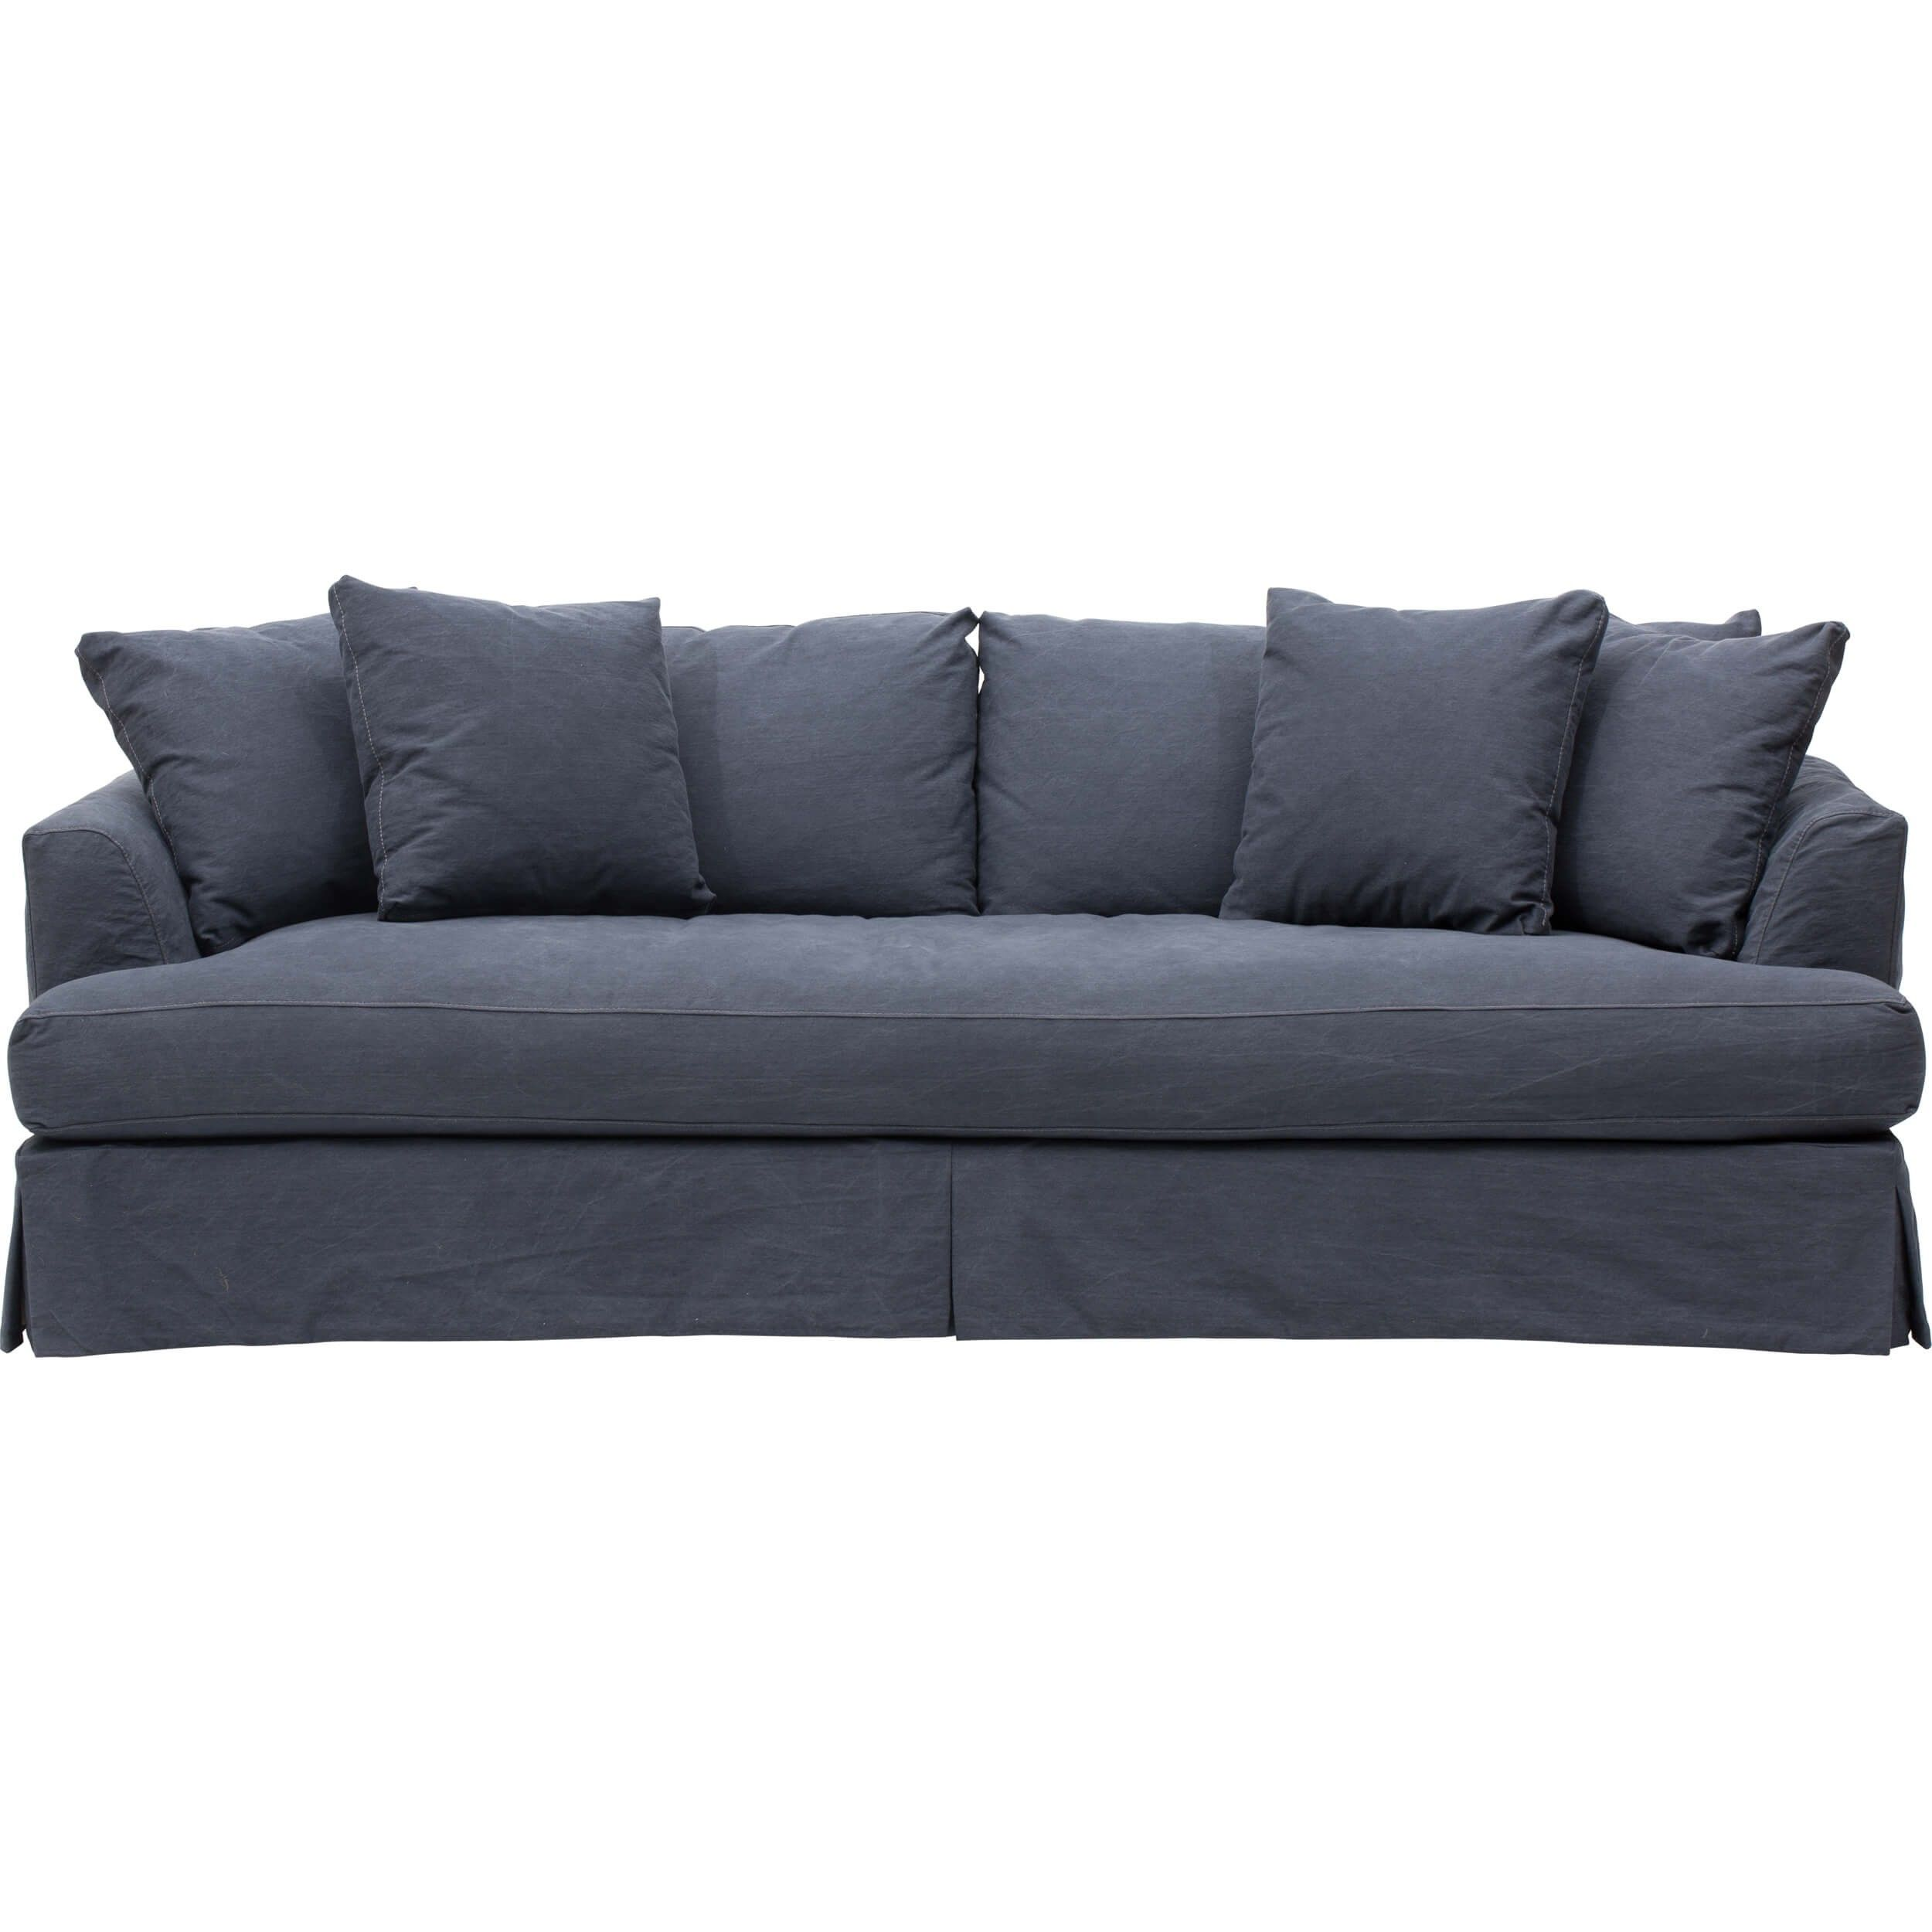 Aston Slipcover Sofa Denim Twilight